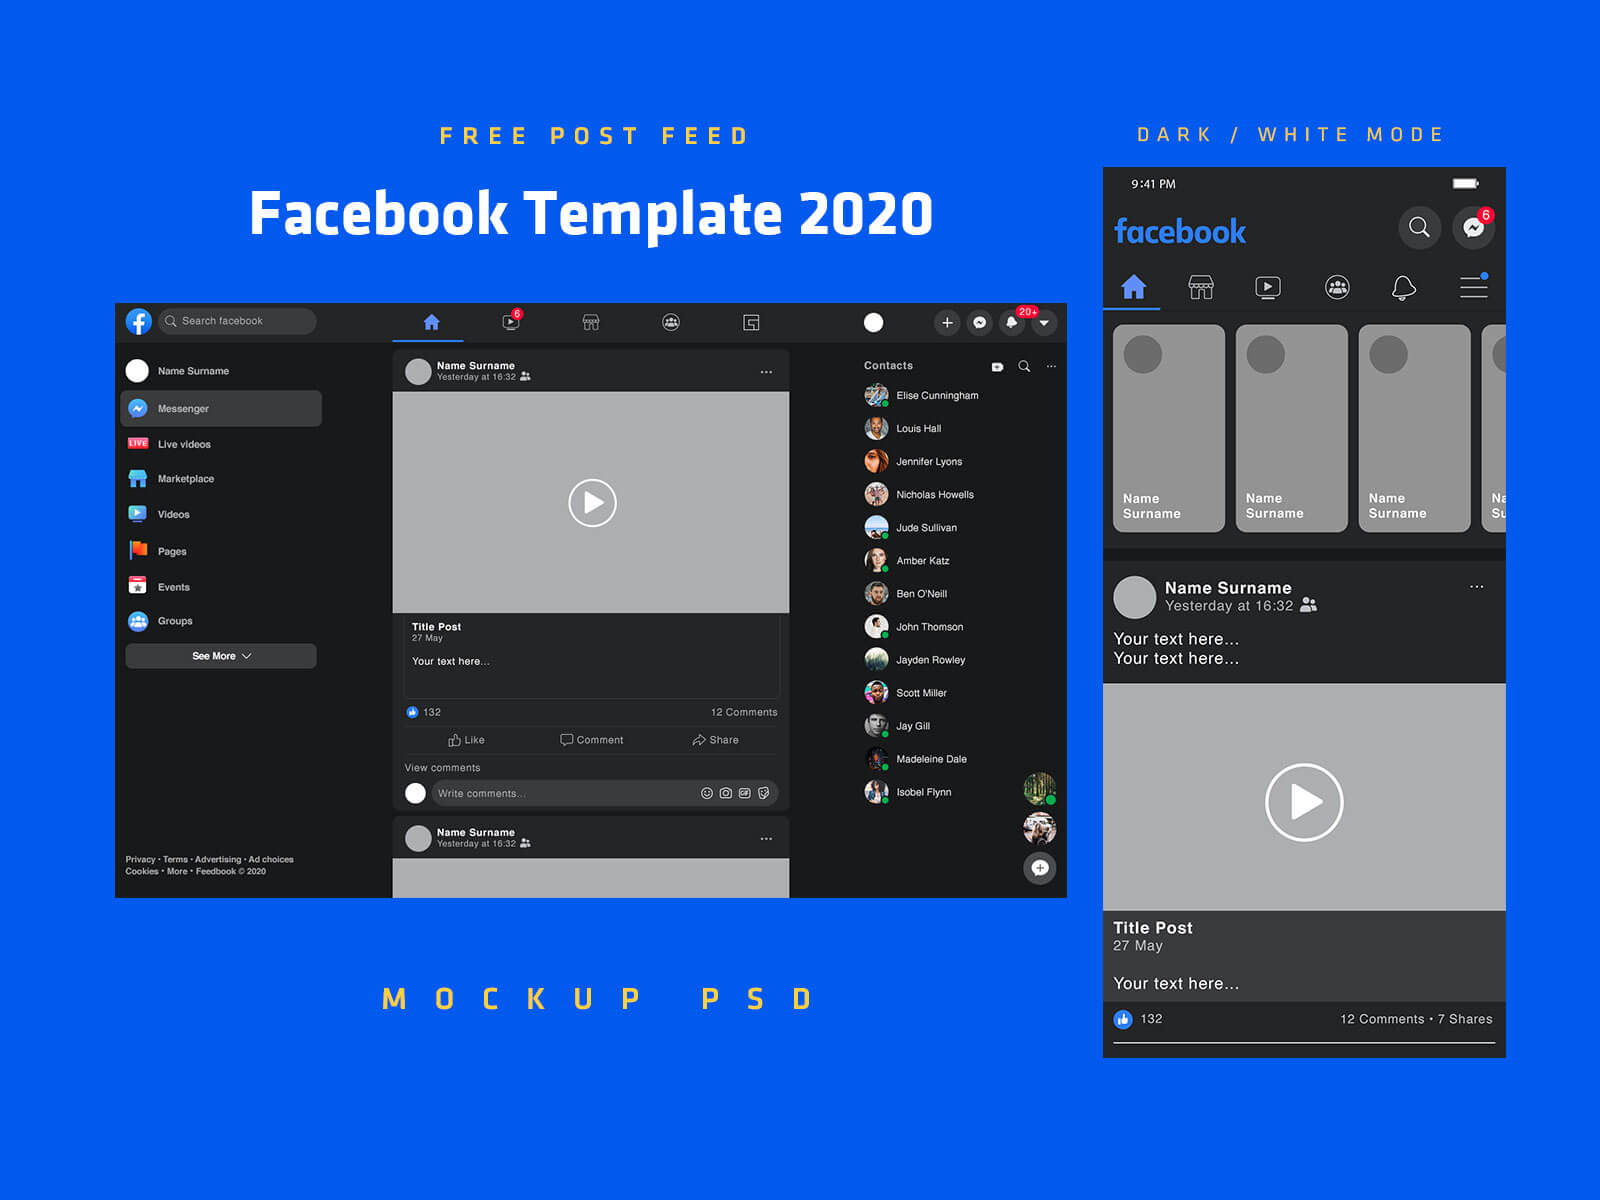 Free-Mobile-&-Desktop-Facebook-Post-Template-2020-Mockup-PSD-Dark-Mode